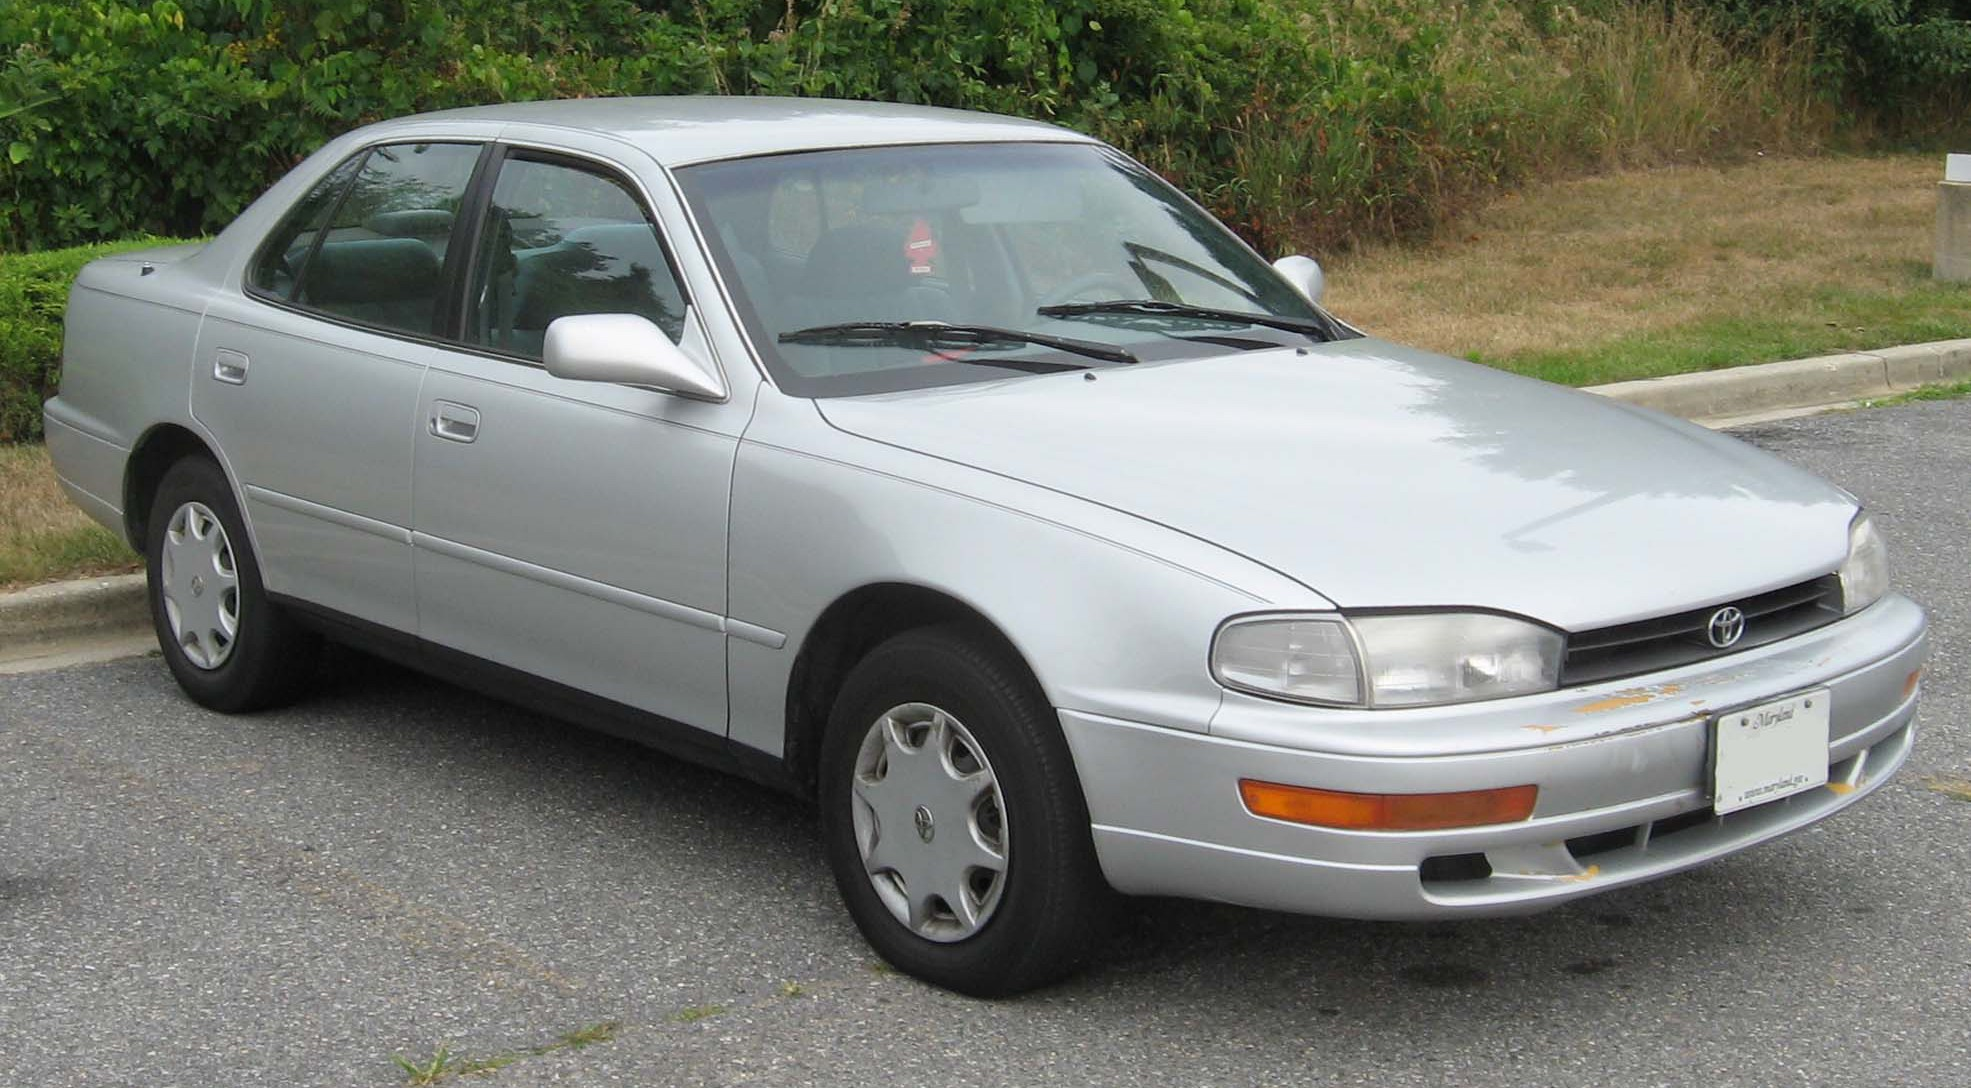 1995 toyota Camry Parts Diagram toyota Camry Xv10 Of 1995 toyota Camry Parts Diagram